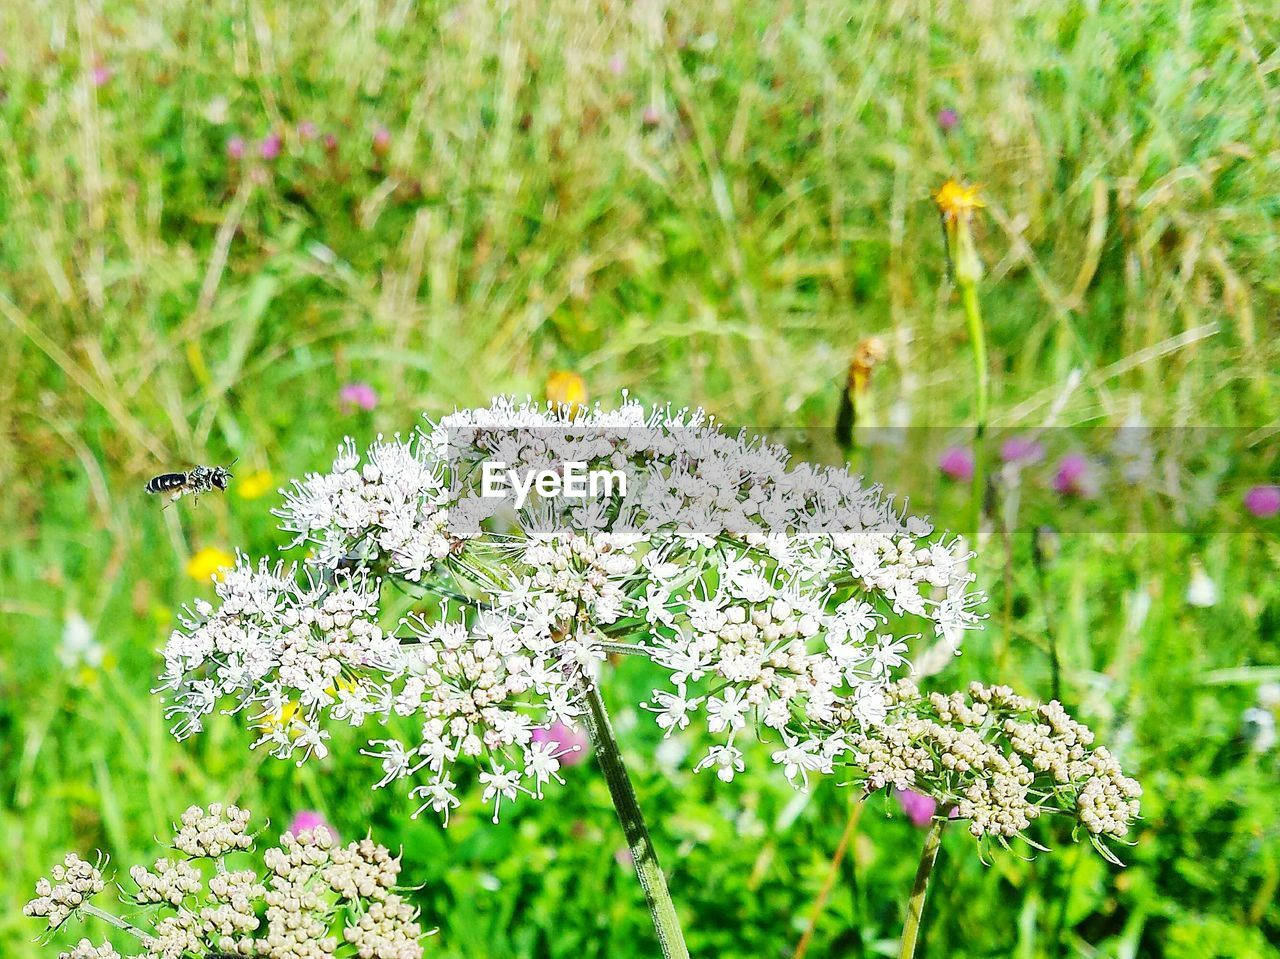 flower, nature, one animal, insect, animal themes, plant, fragility, animals in the wild, white color, beauty in nature, growth, focus on foreground, no people, day, petal, outdoors, field, freshness, close-up, flower head, pollination, bee, grass